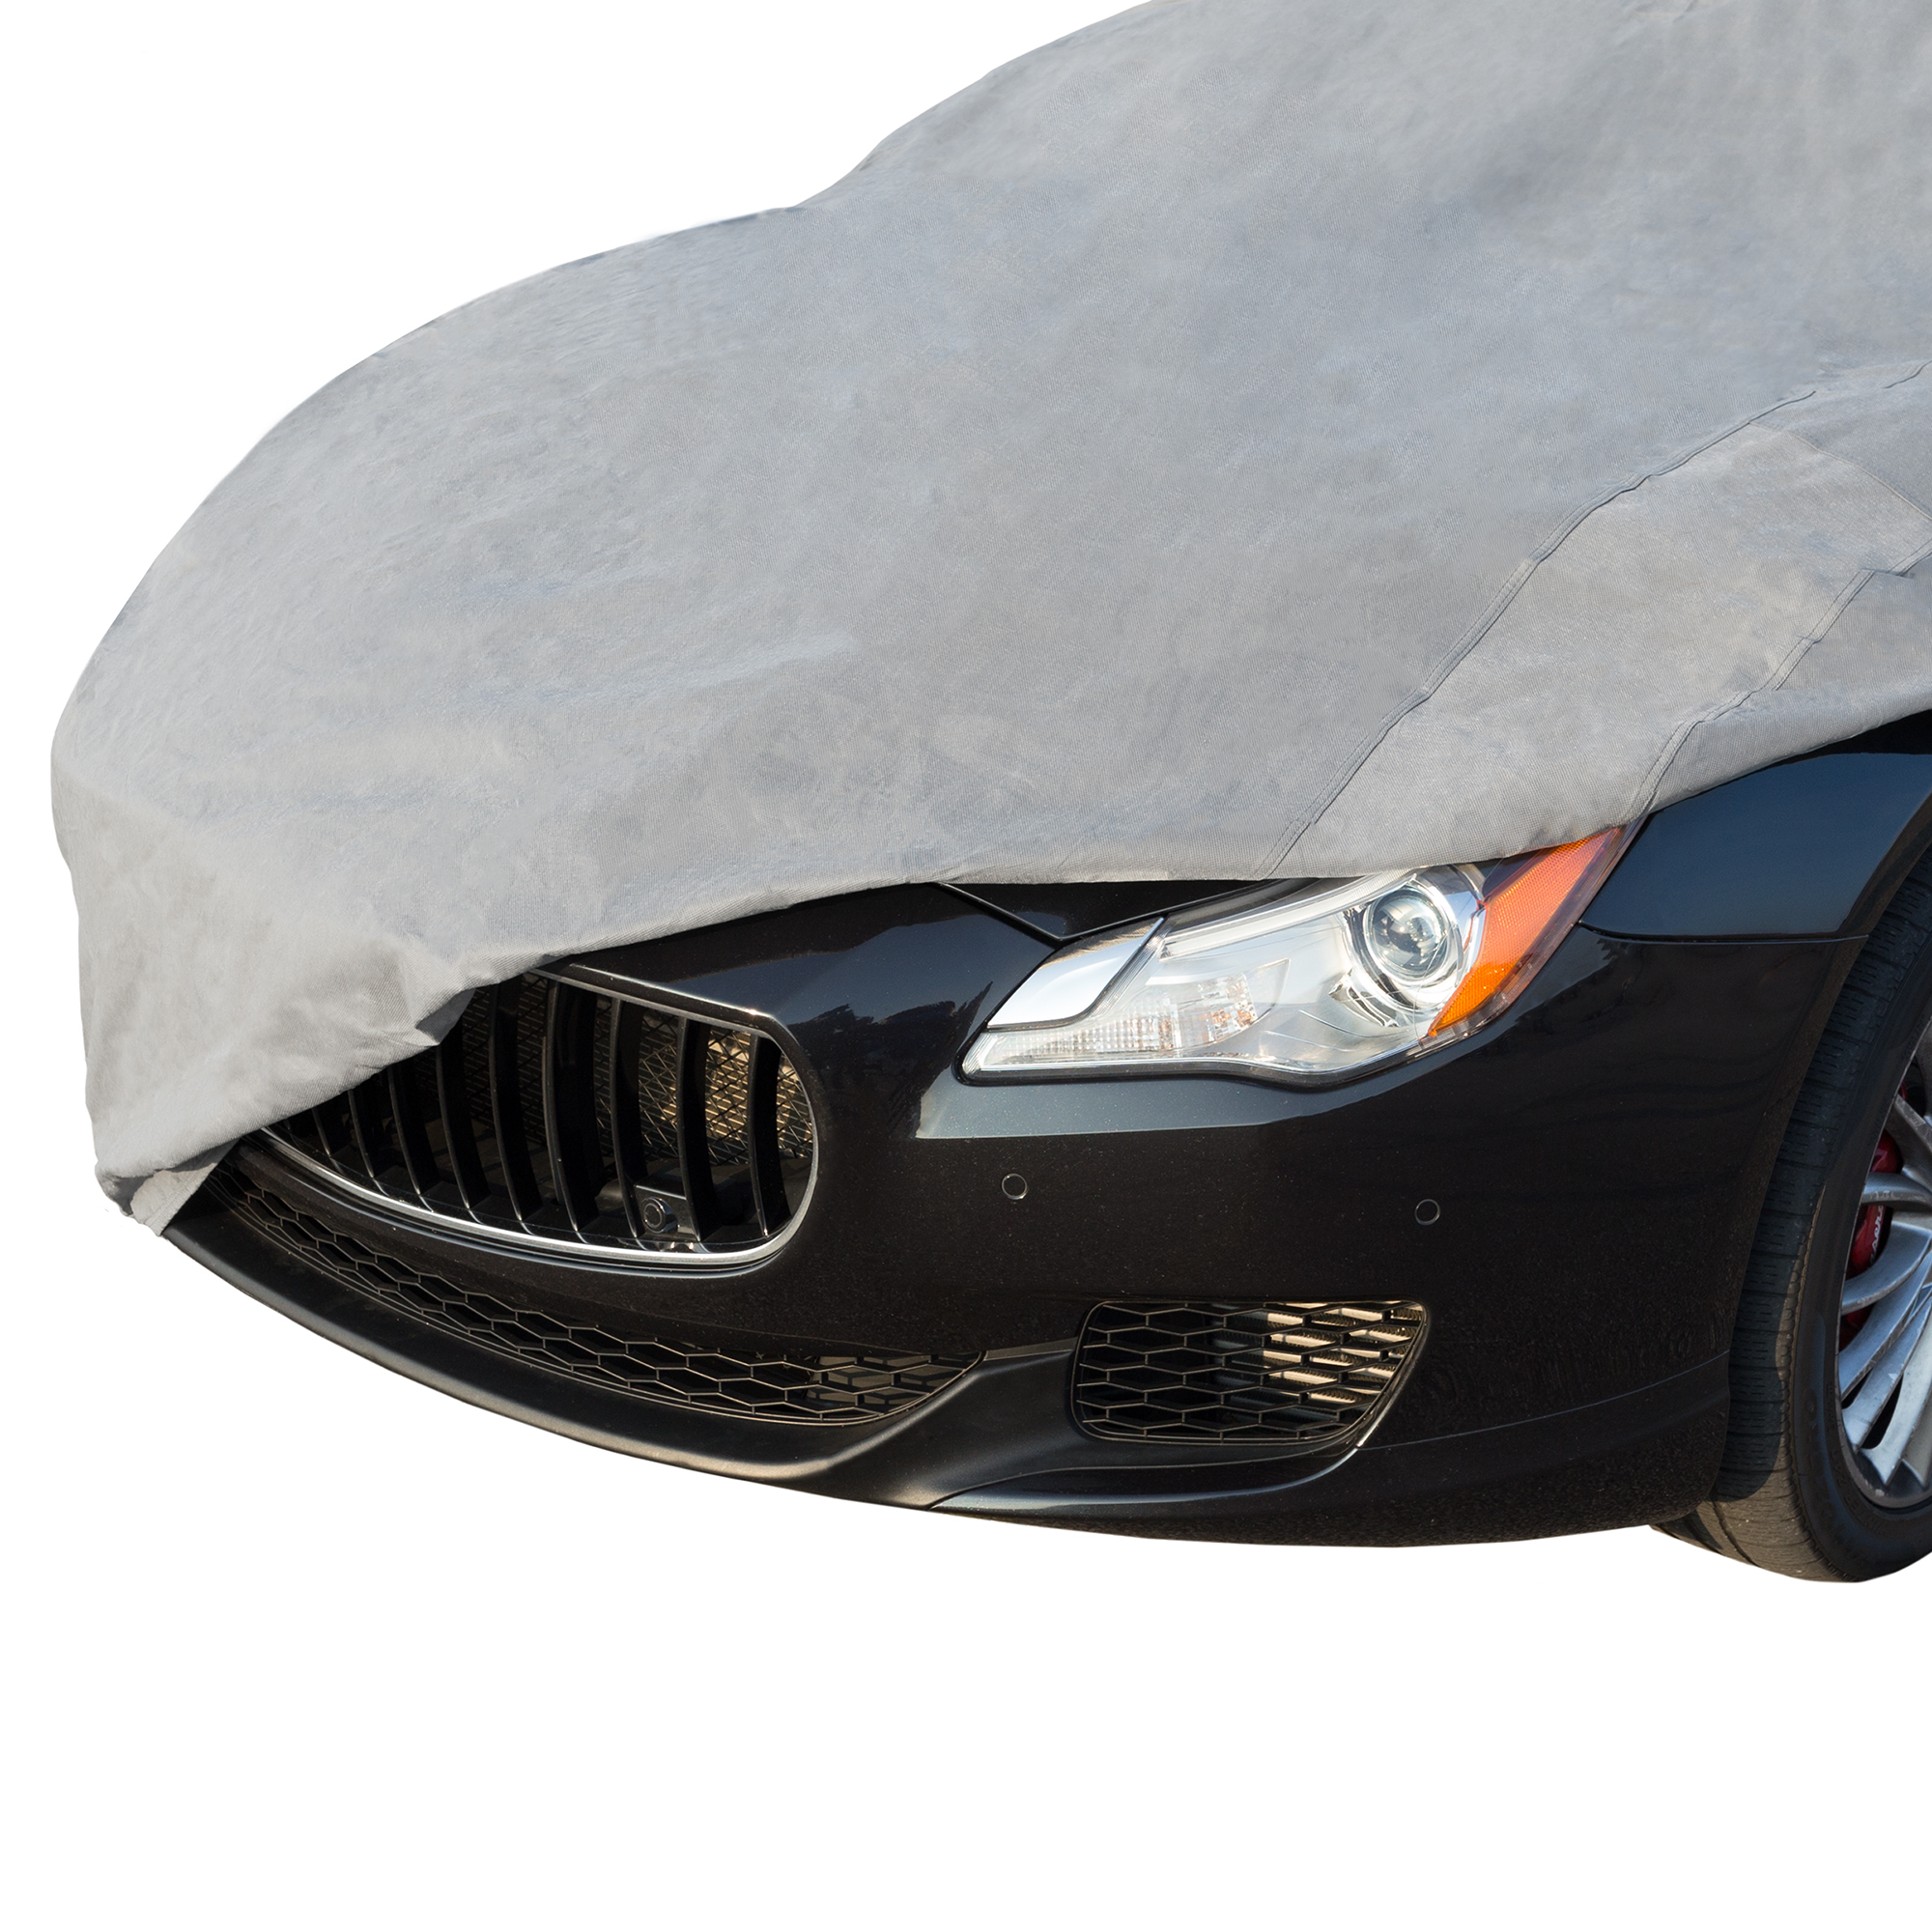 Universal Vehicle Car Cover Elastic Hems Grommets Fits Cars up to 17.2 Ft Water Resistant